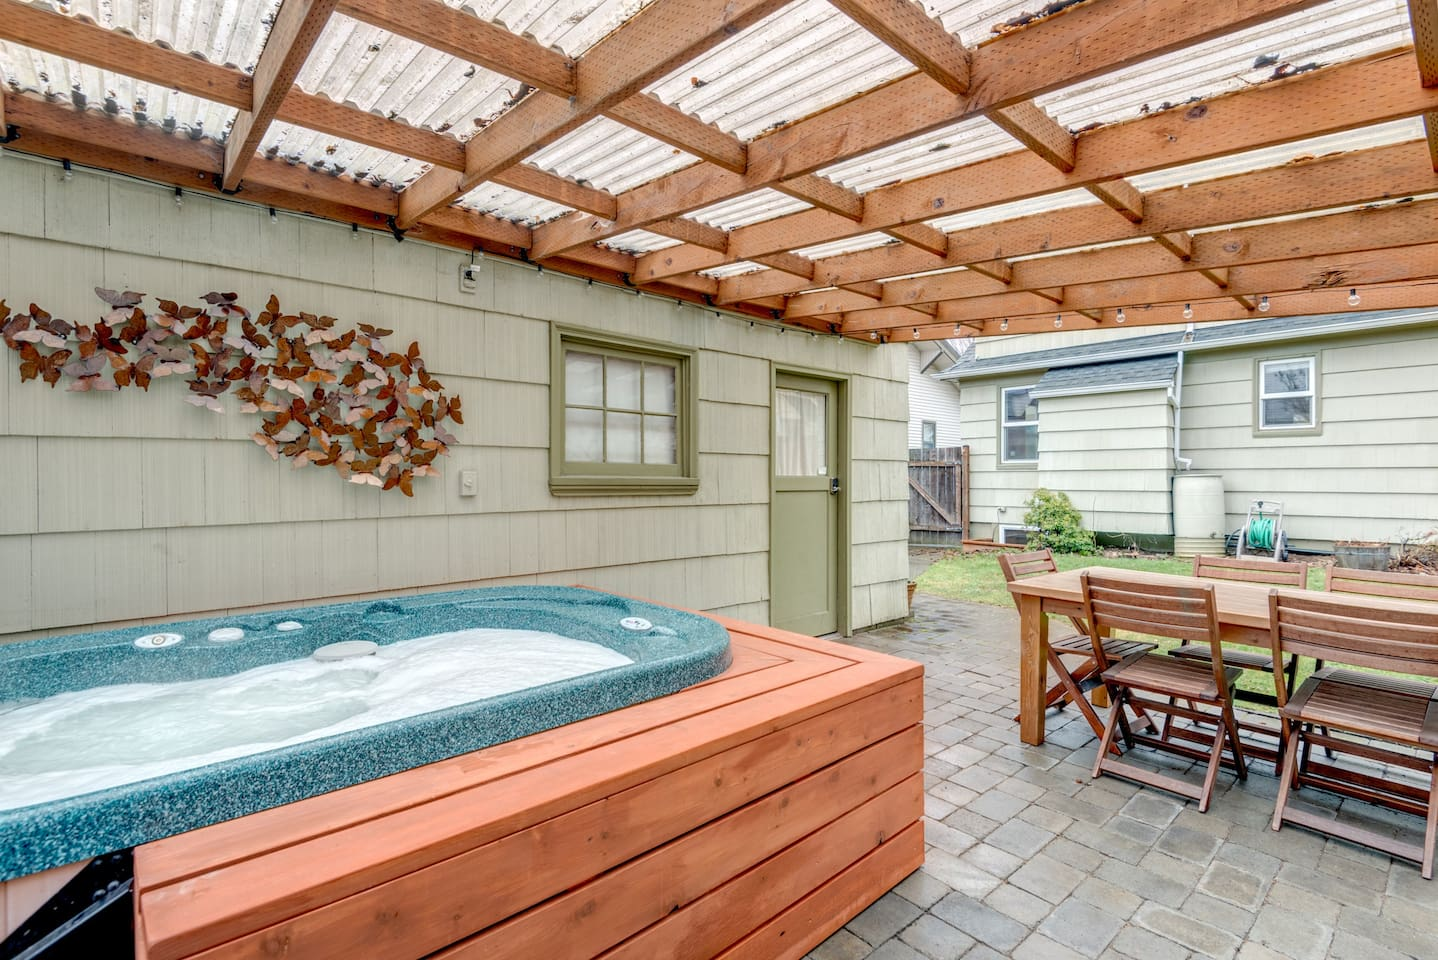 """""""Great location. Easy to get to everything I needed. Restaurants, stores, etc. The host made sure everything was taken care of. The hot tub was a great added bonus."""" Tim G. Dec. 2016 guest"""